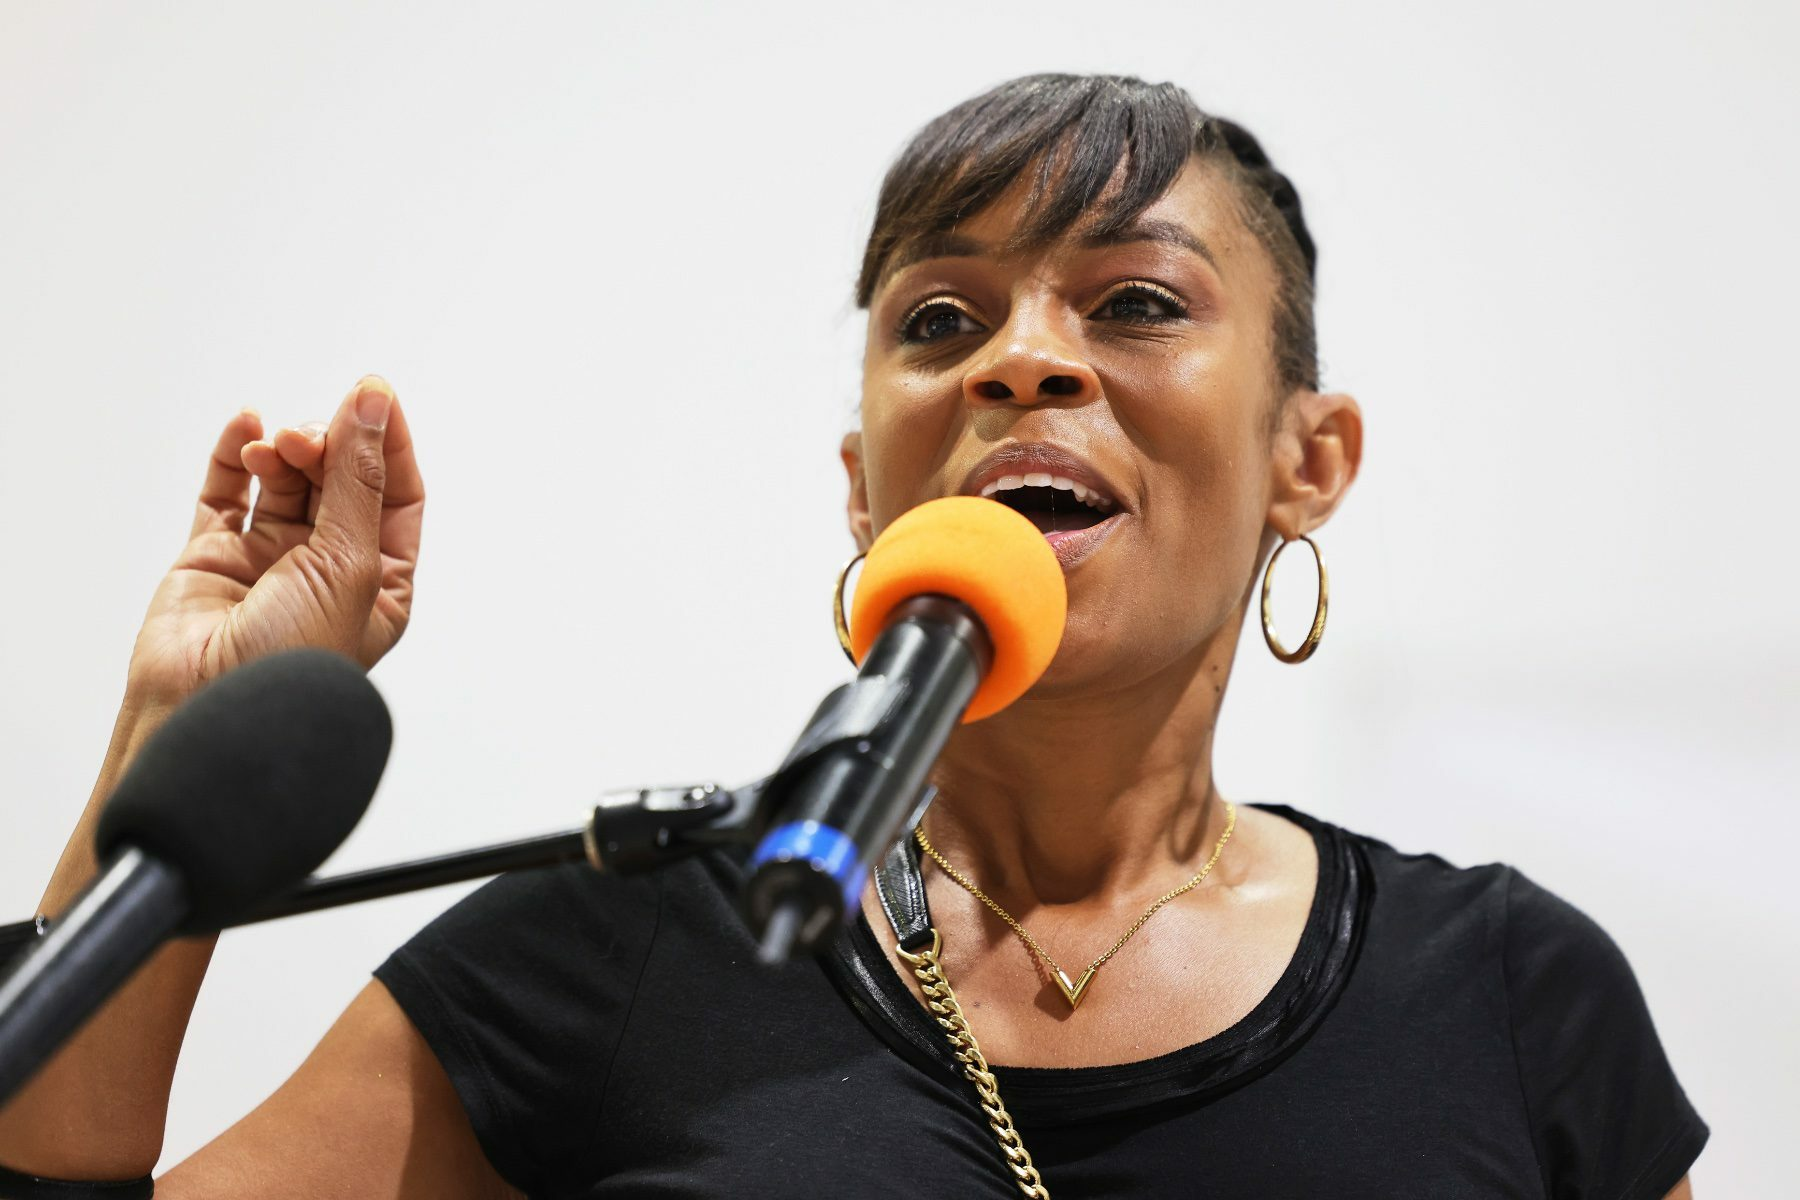 Shontel Brown speaking into a microphone.